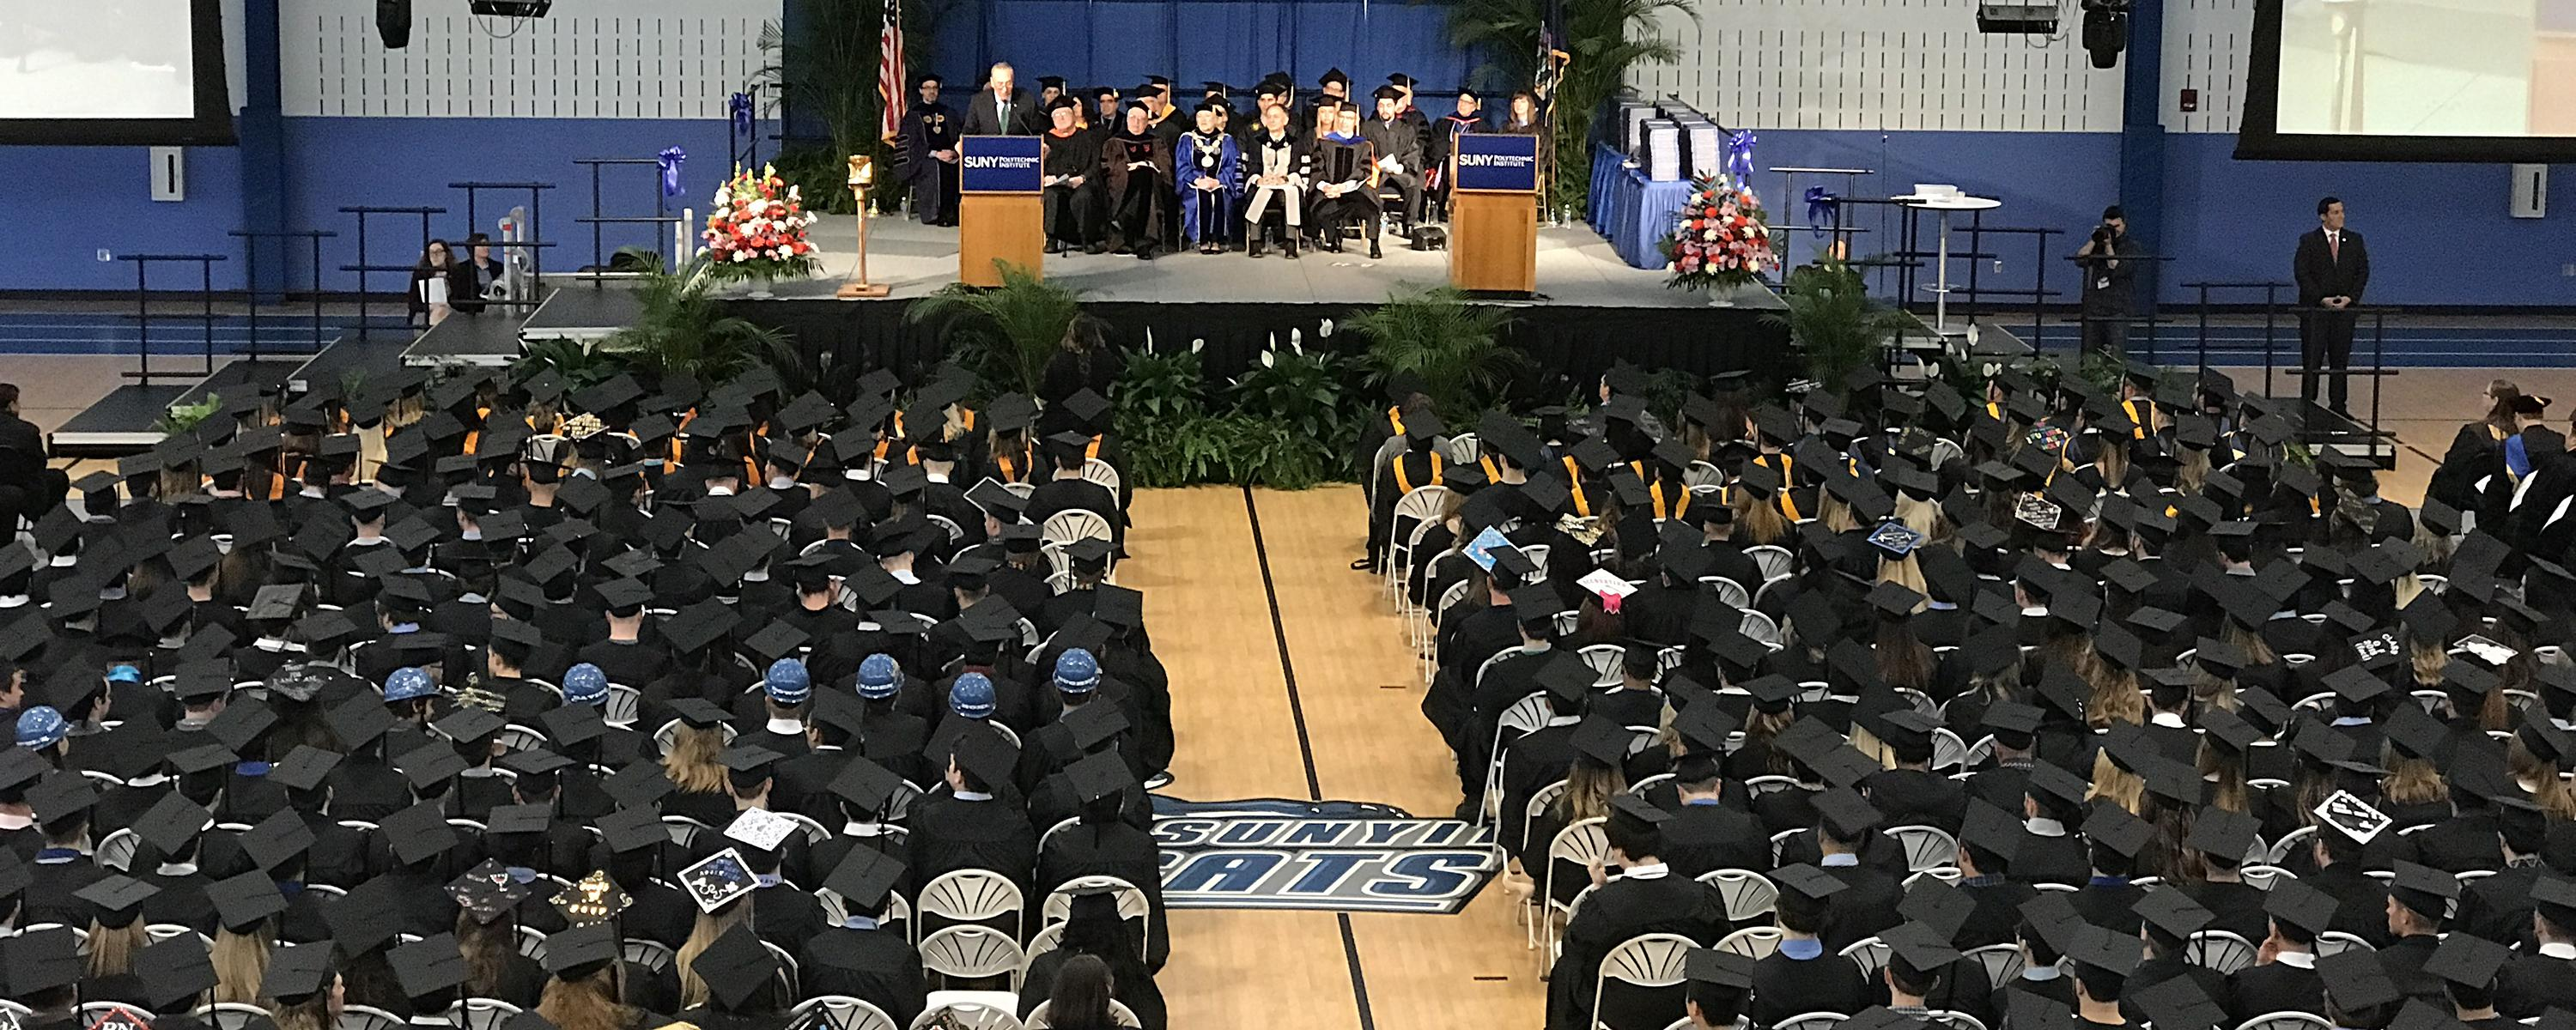 SUNY Poly Commencement